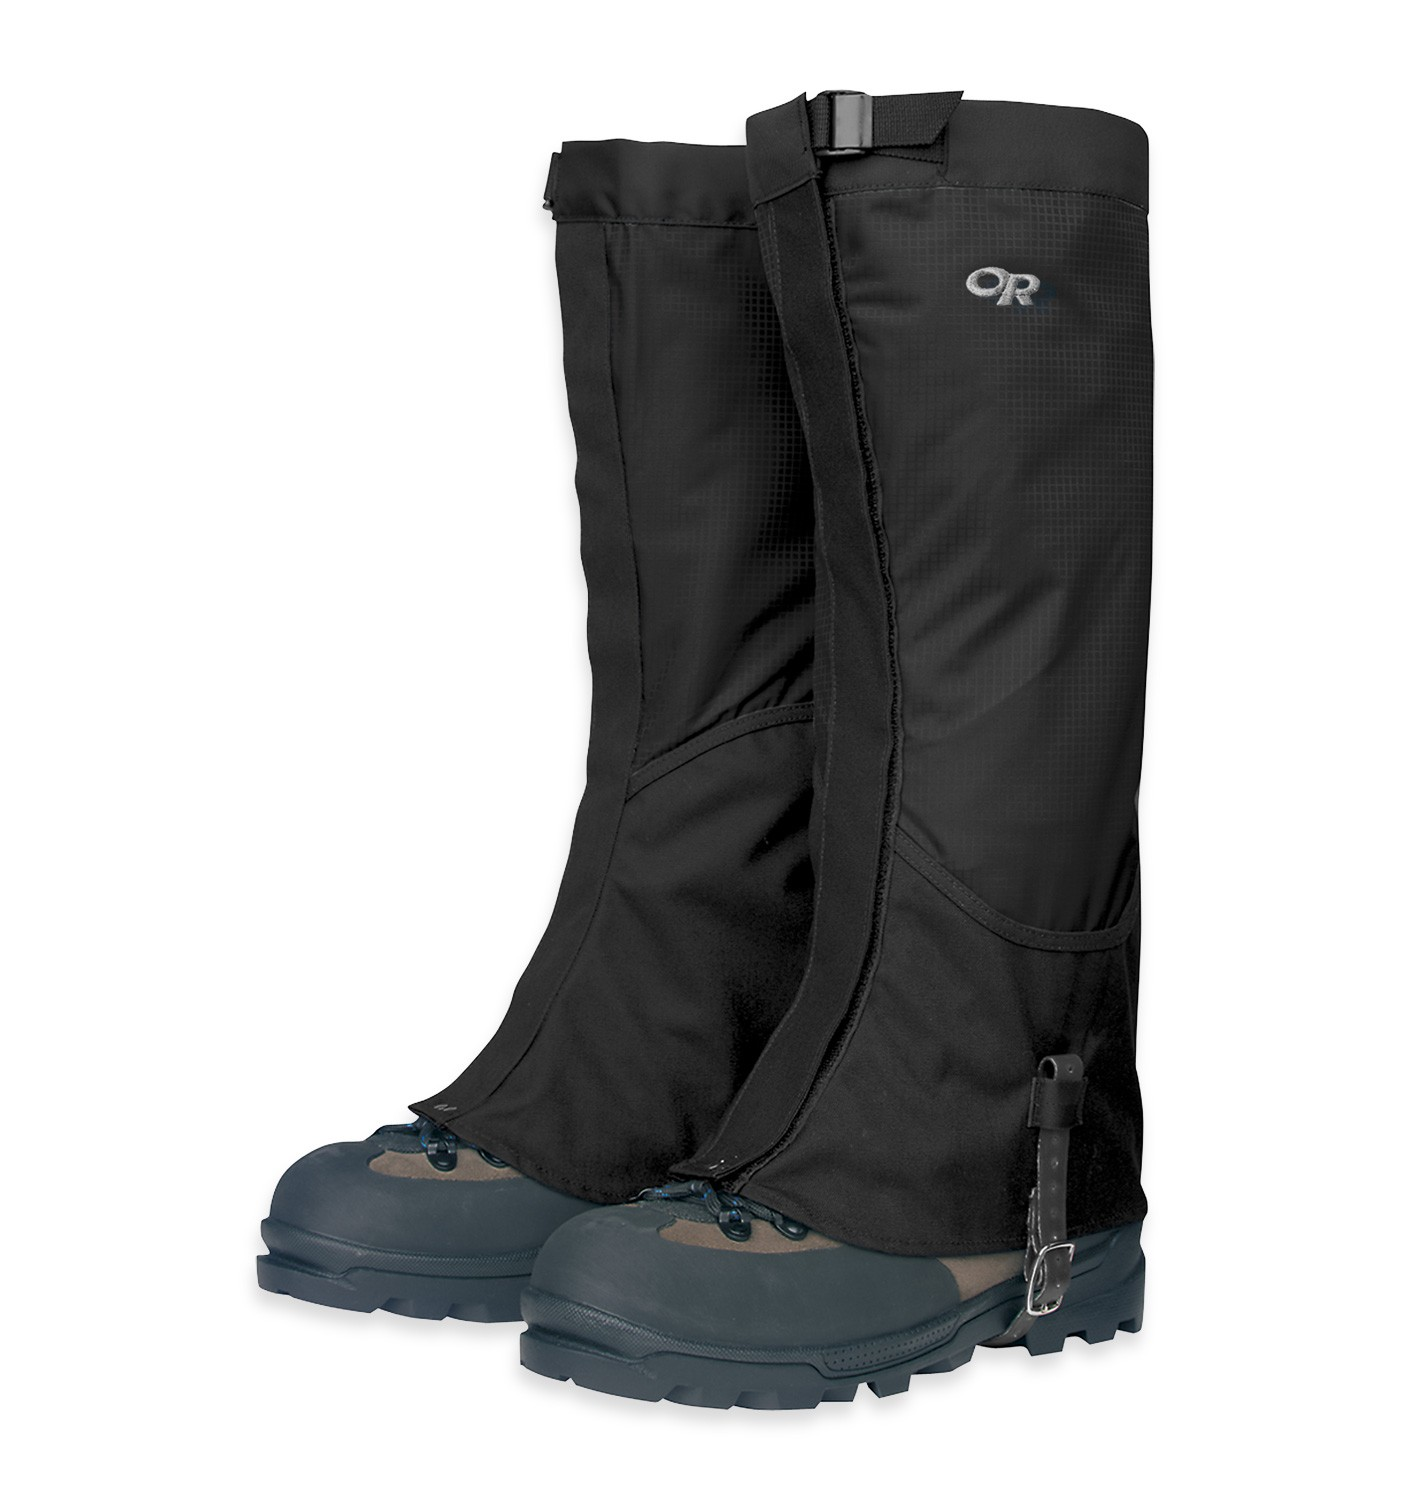 Outdoor research - Гамаши мужские Verglas Gaiters Men's